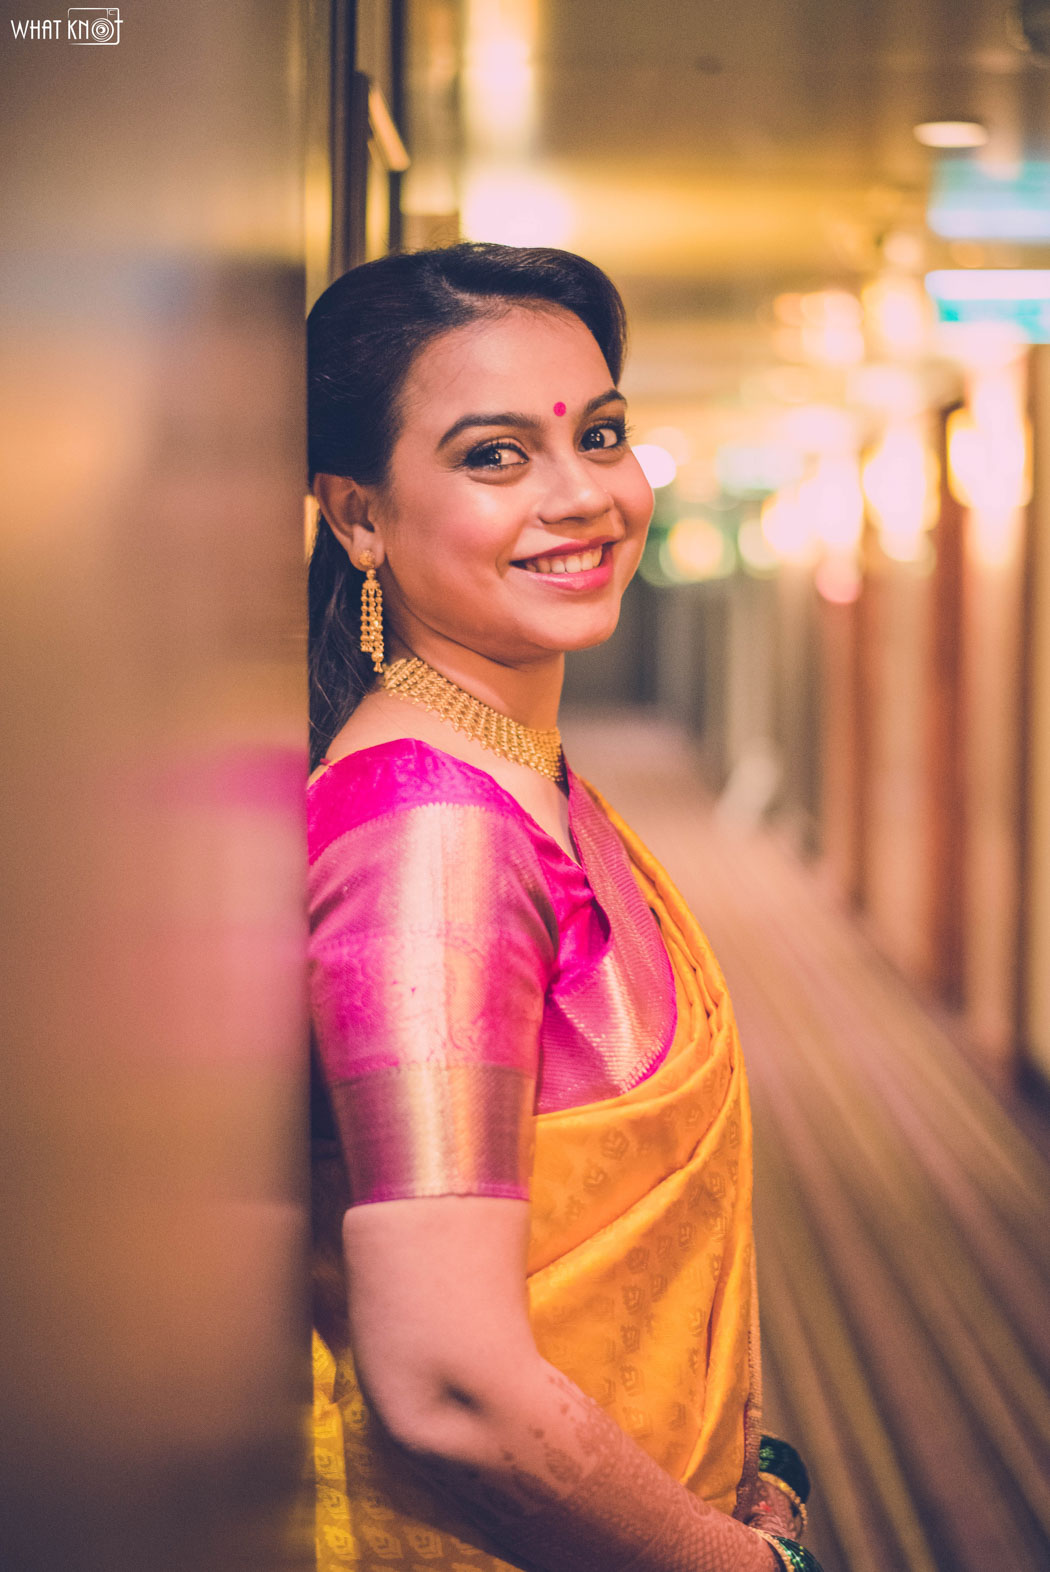 Candid-Wedding-Photography-WhatKnot-Marathi-71